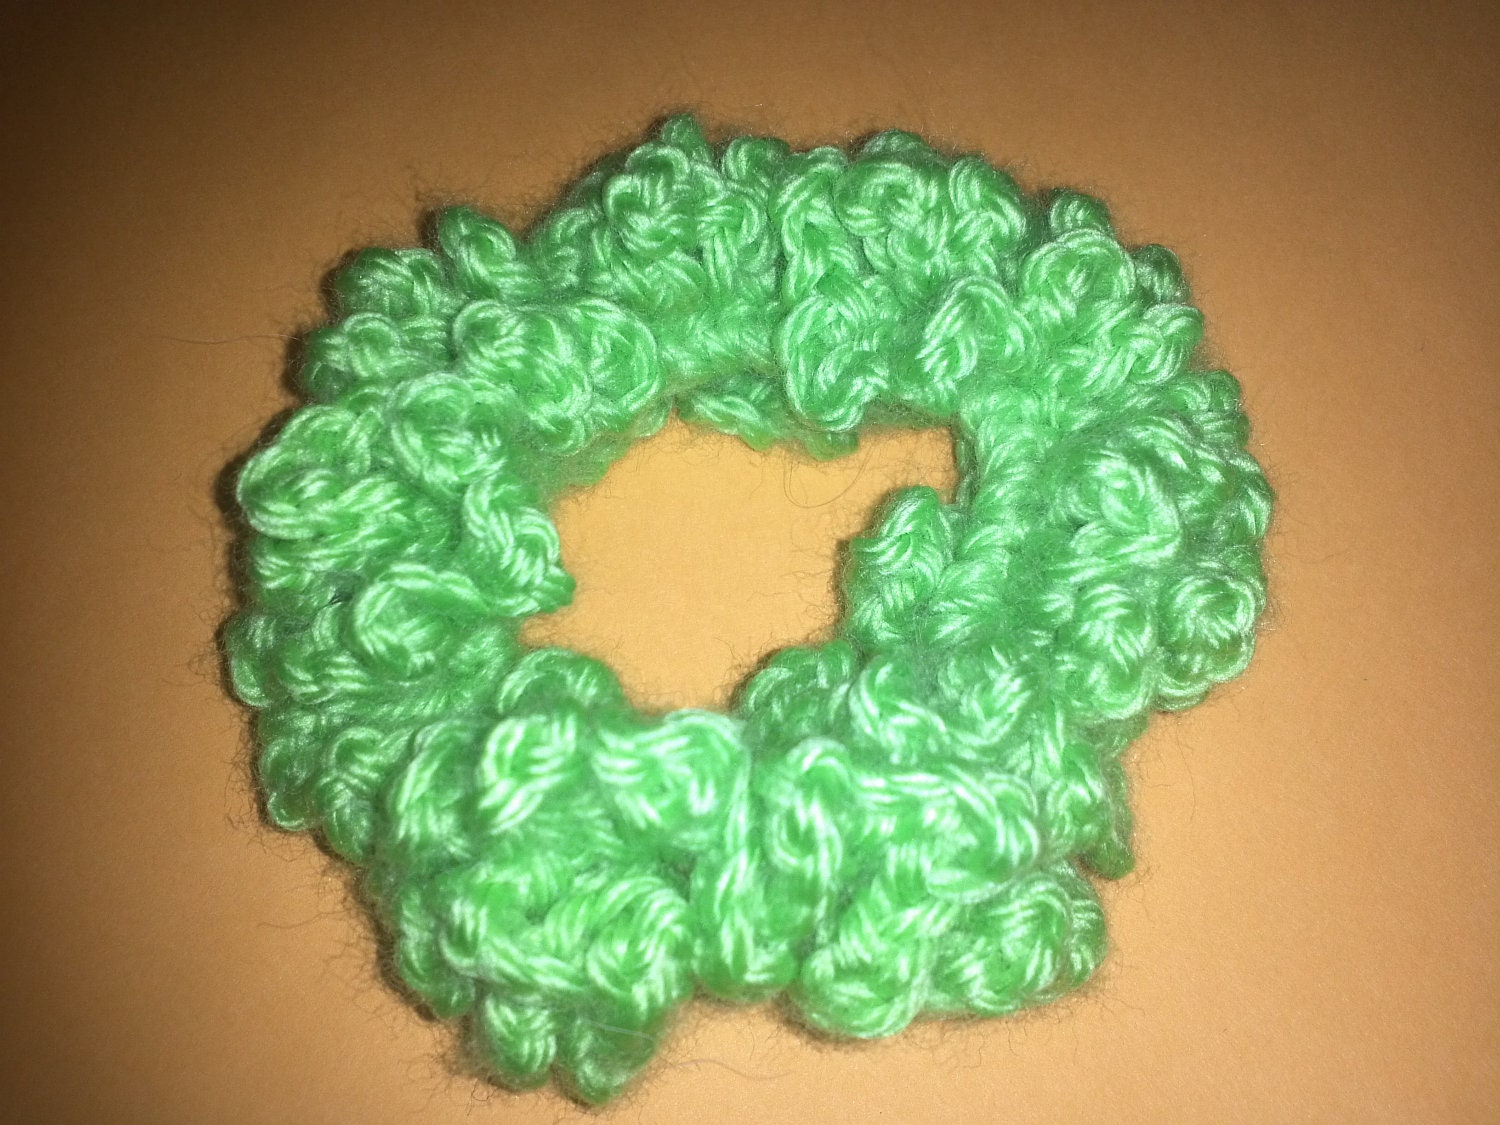 Handmade Crocheted Scrunchie Hair Band Ponytail Holder in Lime Green, SPECIAL OFFER INSIDE (24)